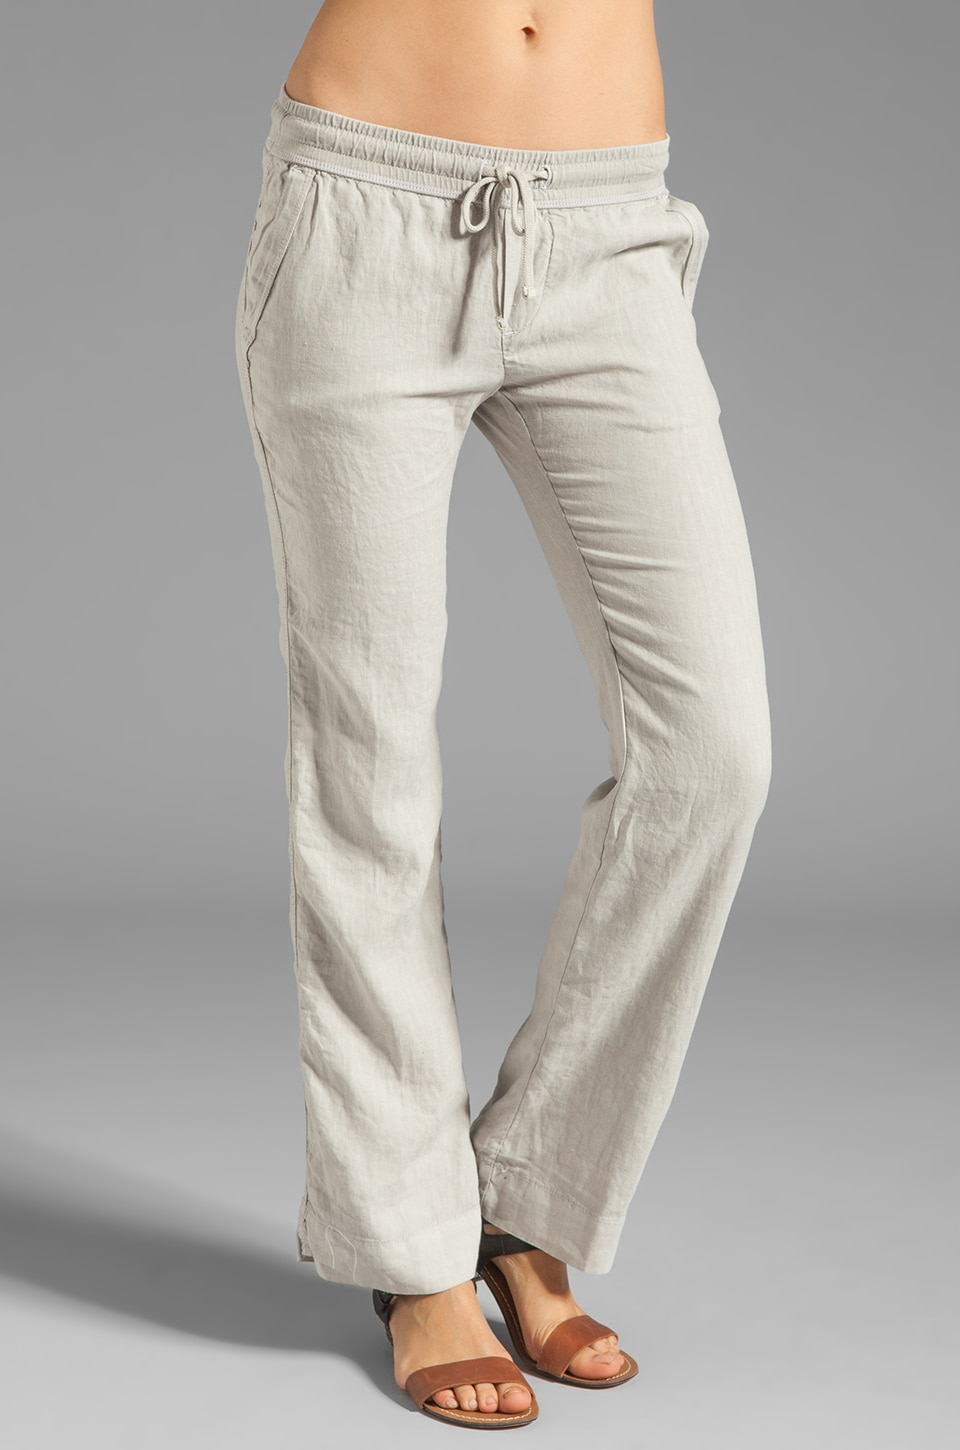 James Perse Tailored Linen Pant in Matchstick